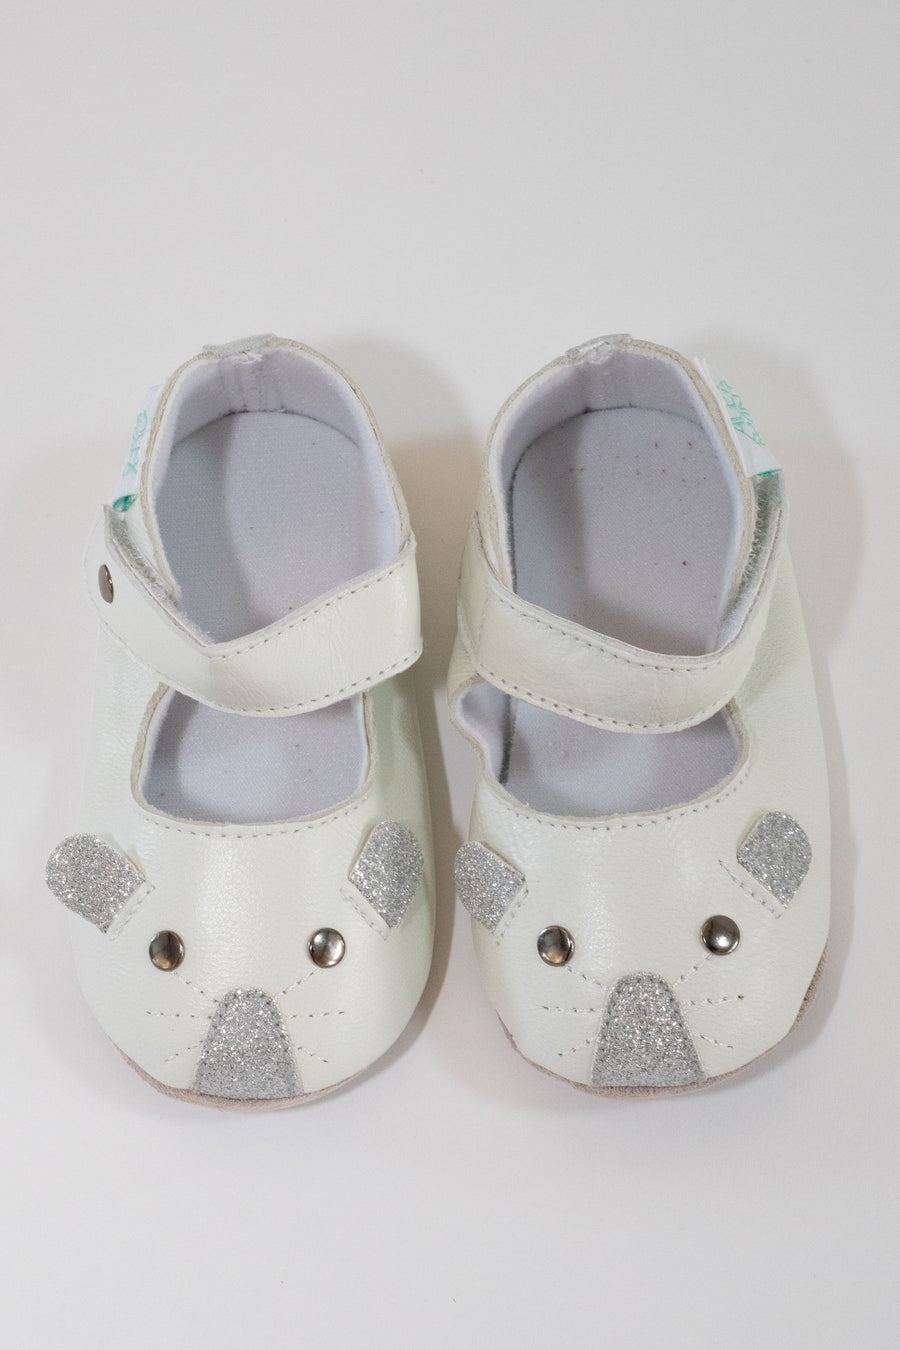 LITTLE MOUSE CREAM SHOE IN SILVER